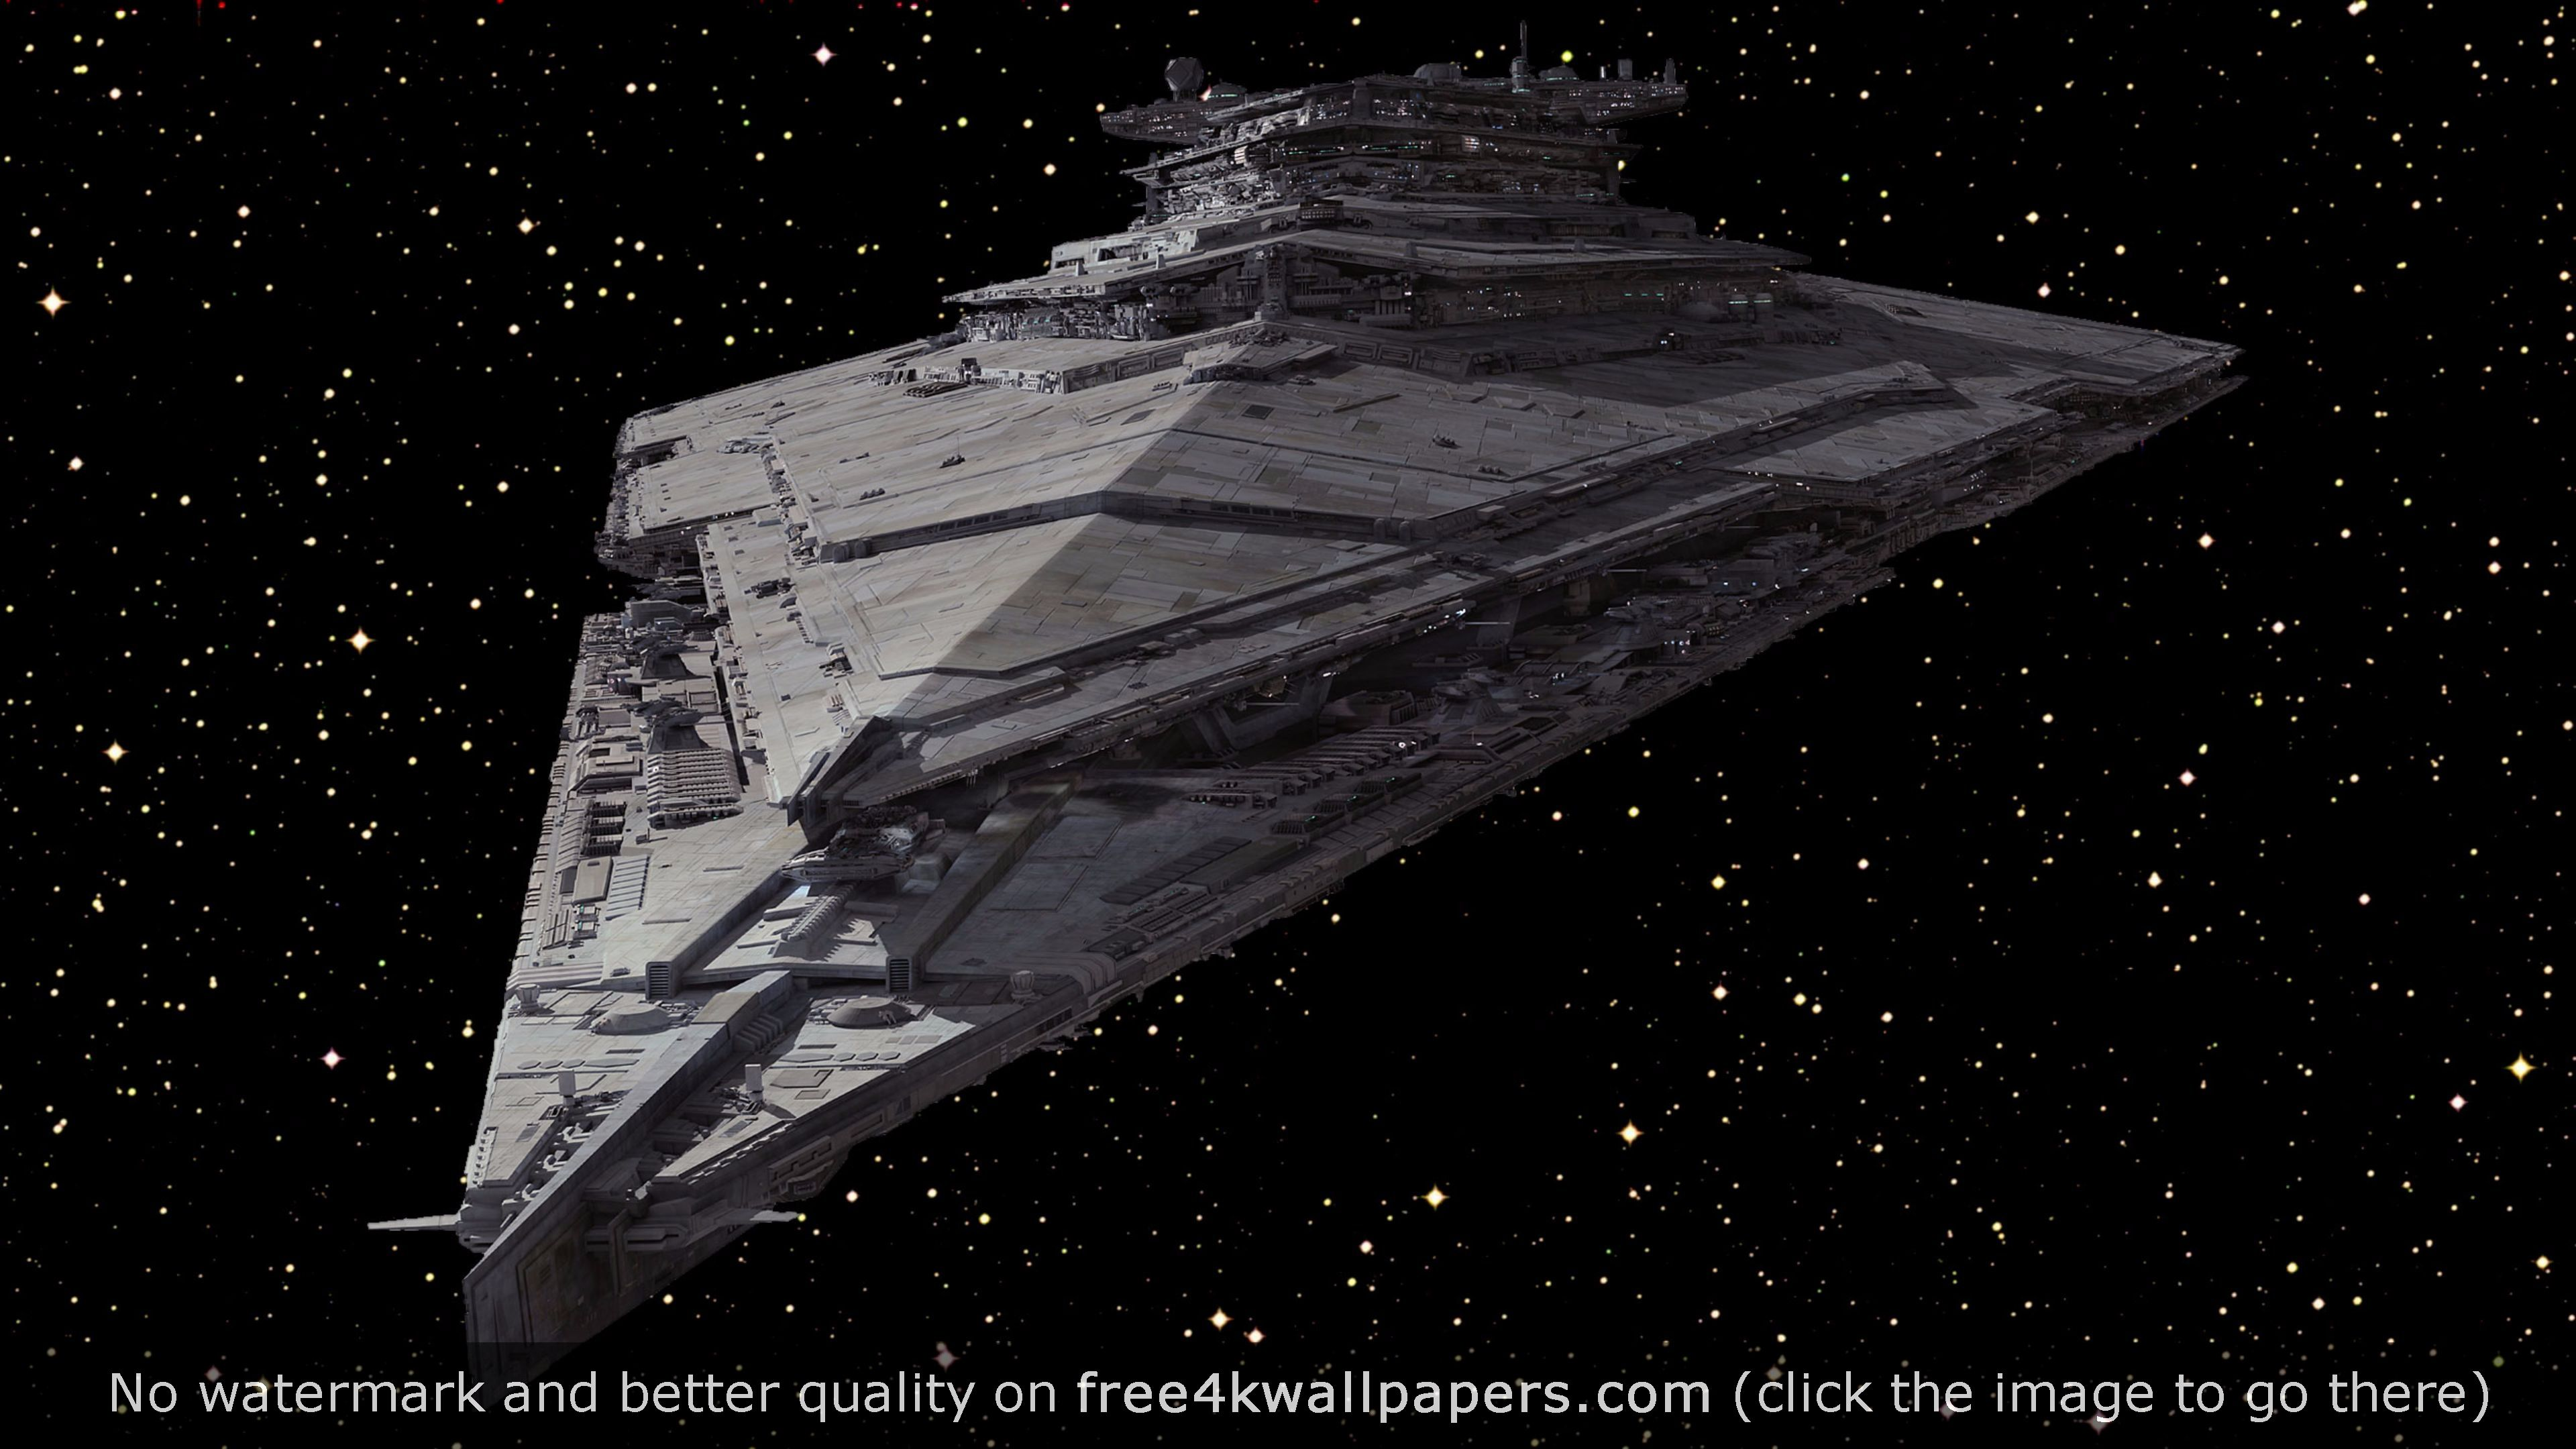 Popular Star Wars The Force Awakens 4k Wallpaper Star Wars Pictures Star Wars Spaceships Star Wars Ships